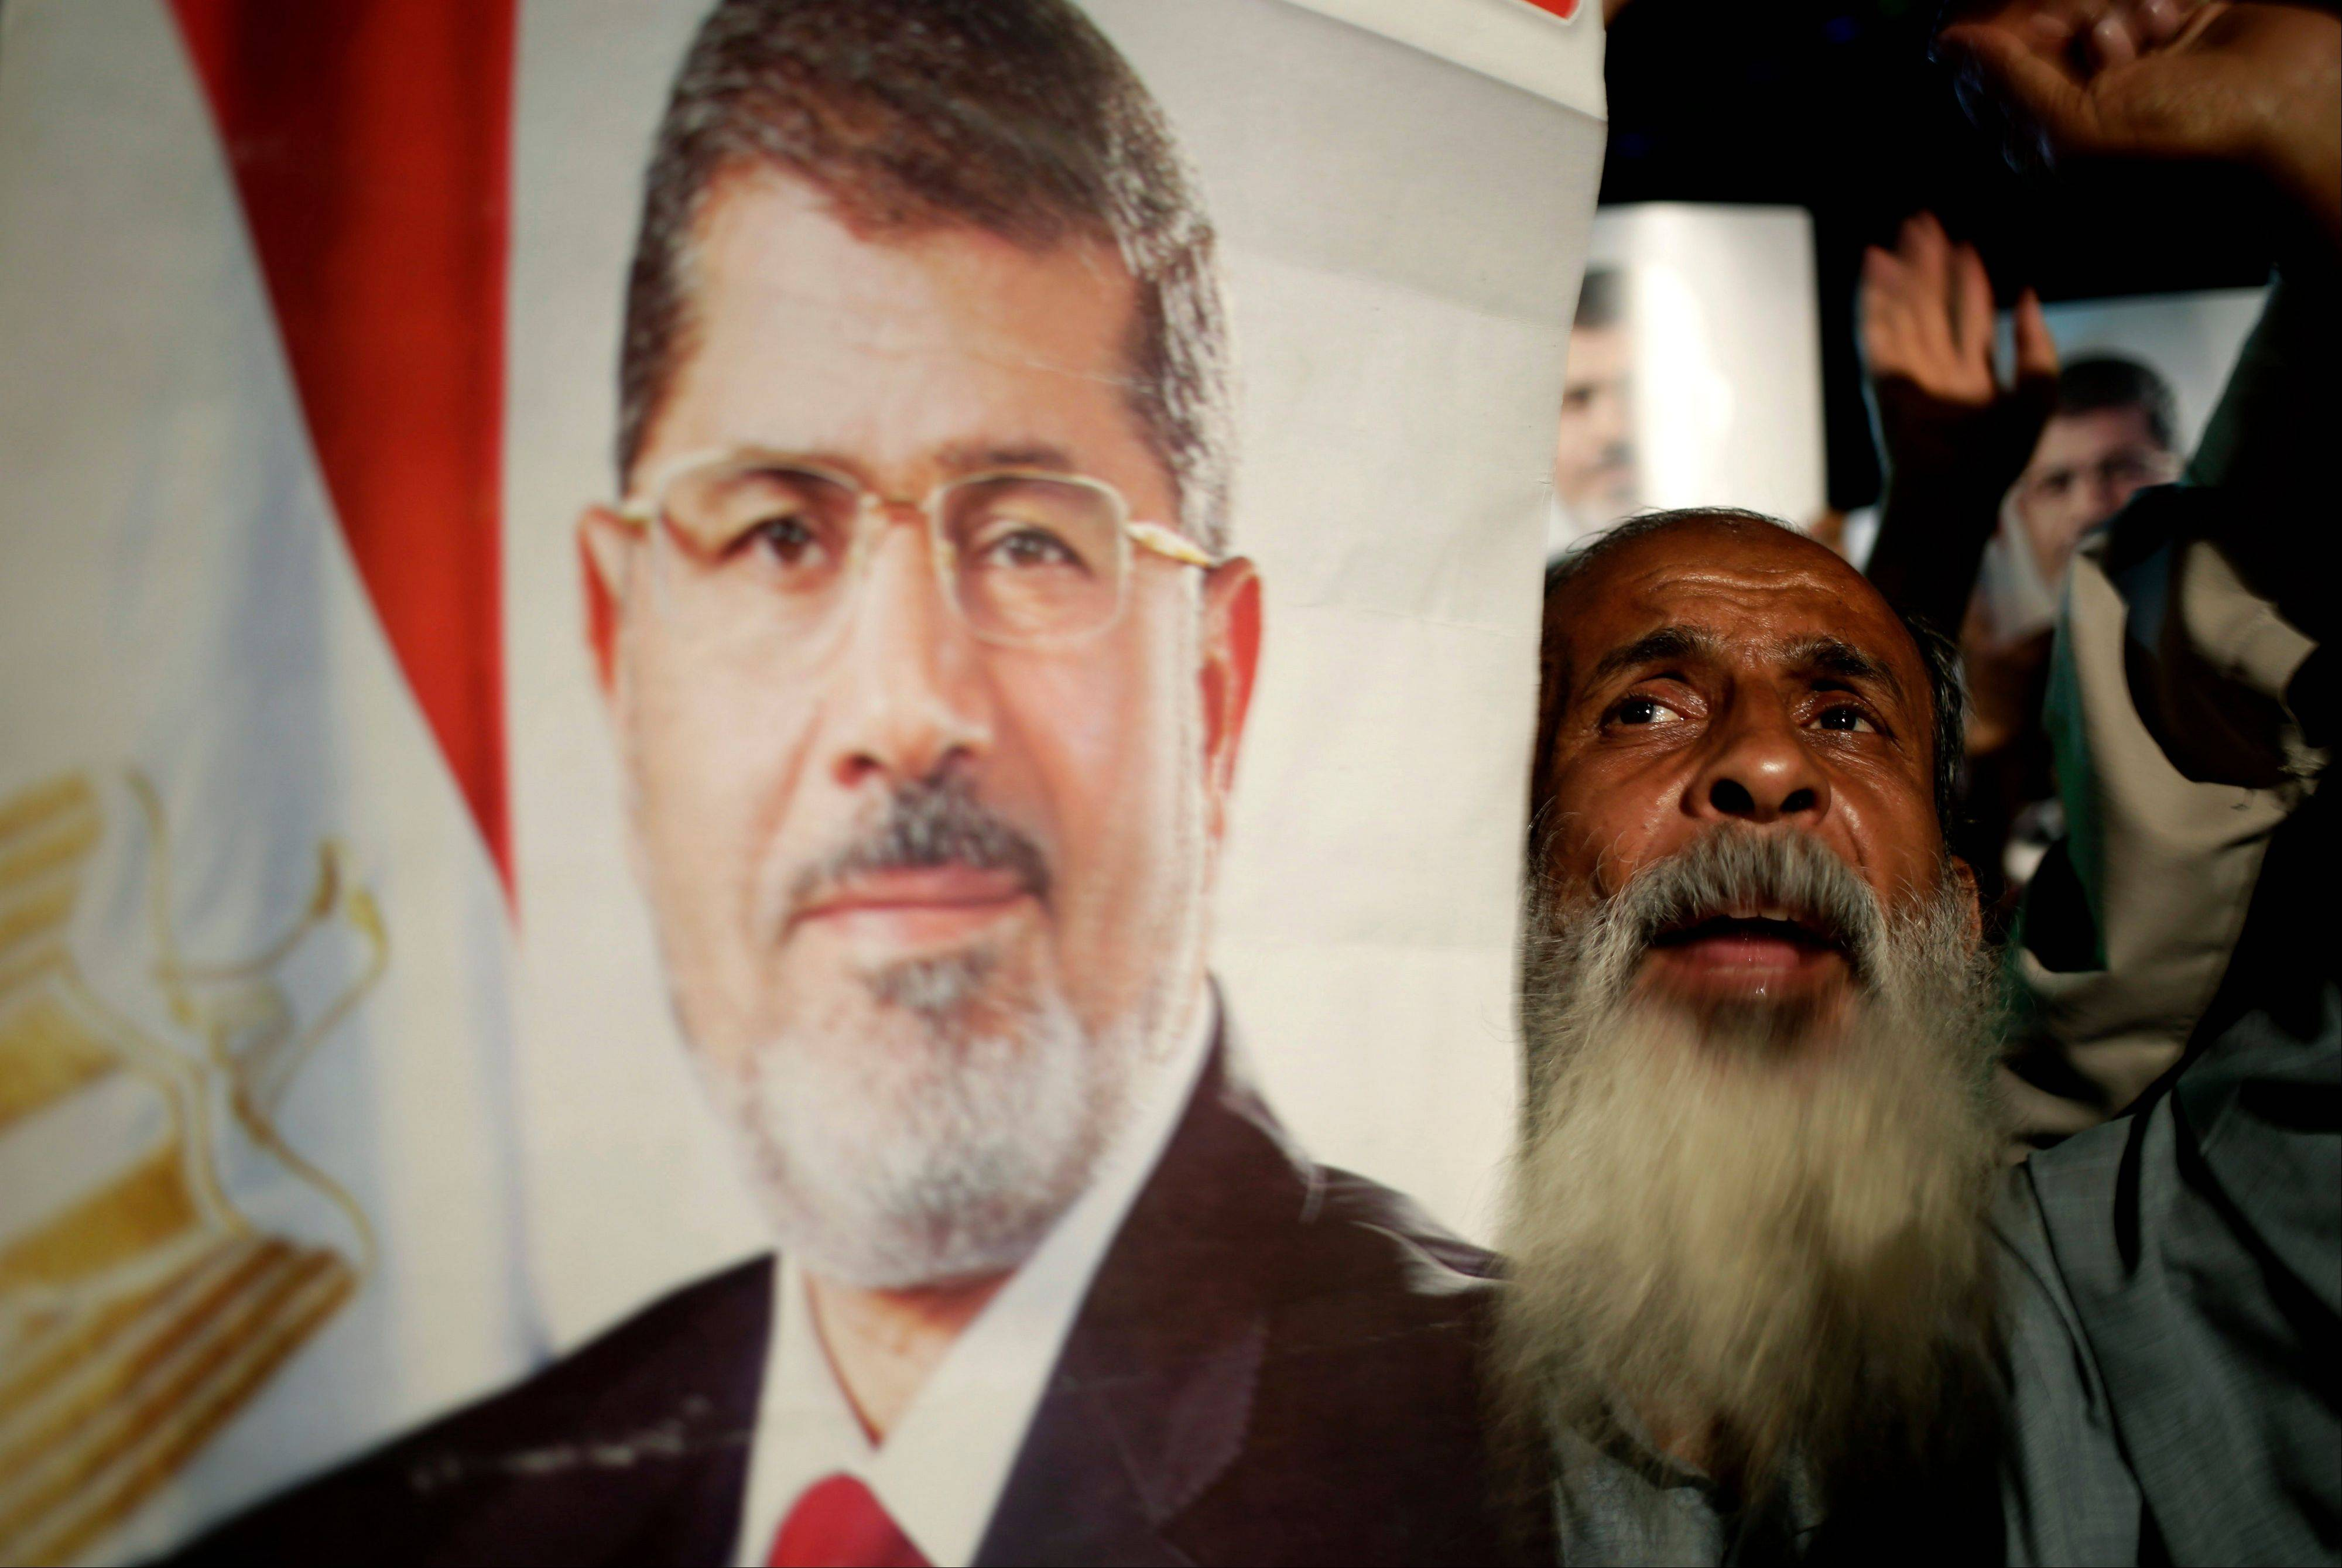 Supporters of Egypt's ousted President Mohammed Morsi chant slogans against Egyptian Defense Minister Gen. Abdel-Fattah el-Sissi at Nasr City, where protesters have installed a camp and hold daily rallies, in Cairo, Egypt, Sunday.